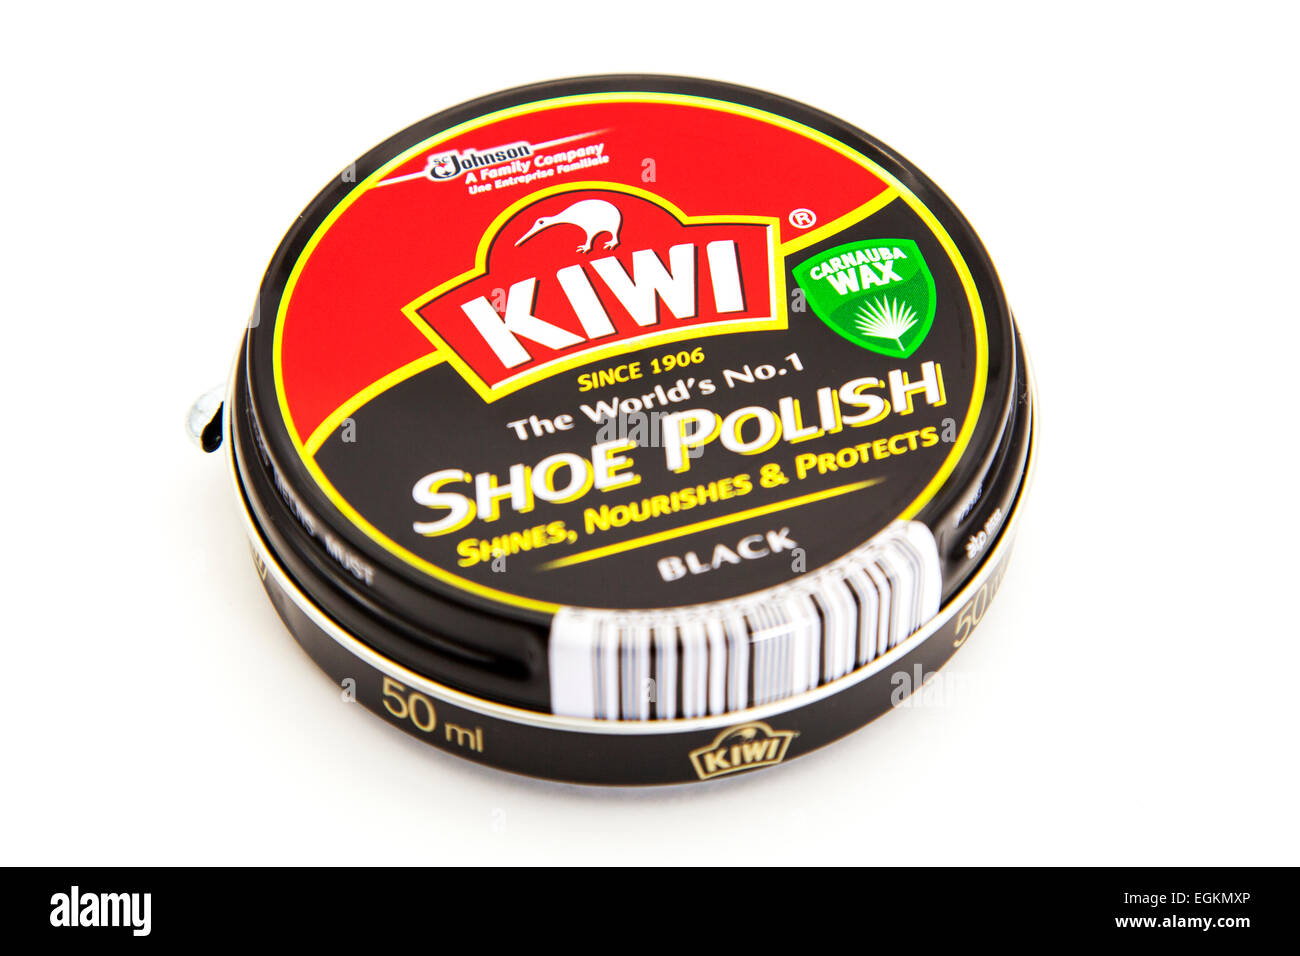 Kiwi shoe polish black tin product logo 50ml container cutout cut out white background copy space isolated - Stock Image